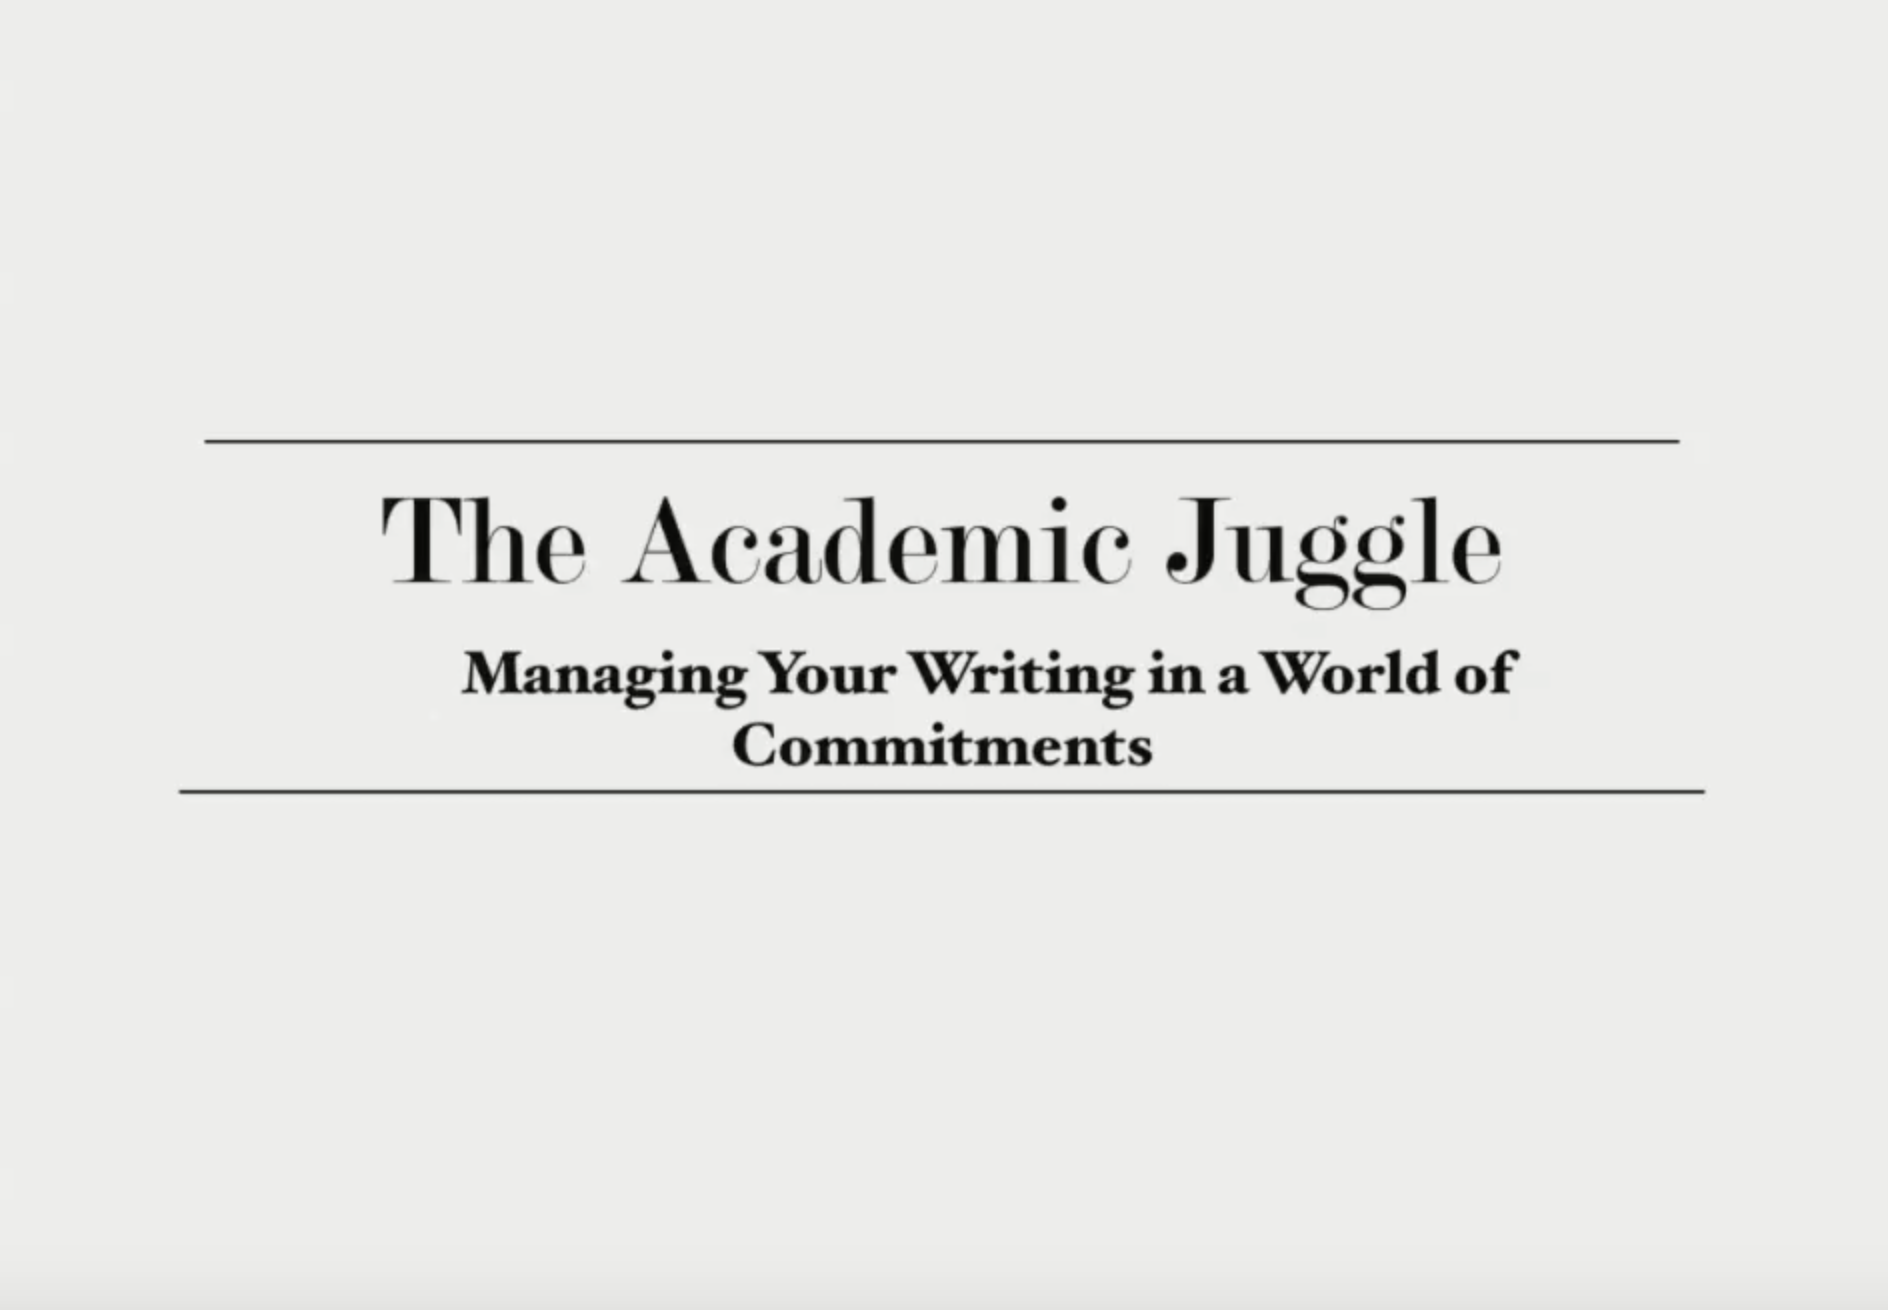 The Academic Juggle